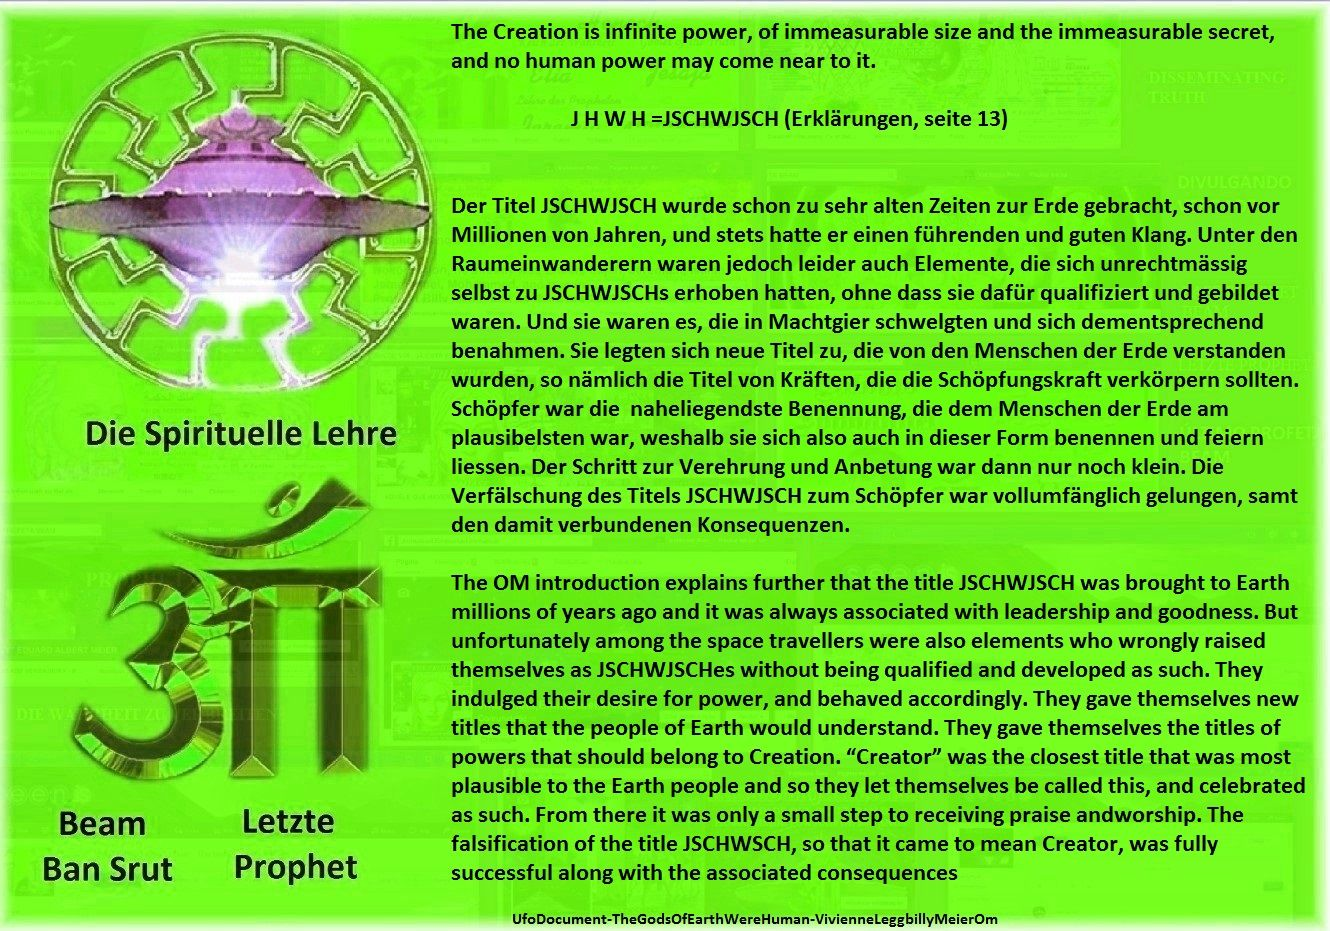 The OM introduction explains further that the title JSCHWJSCH was brought to Earth millions of years ago and it was always associated with leadership and goodness. But unfortunately among the space travellers were also elements who wrongly raised themselves as JSCHWJSCHes without being qualified and developed as such. They indulged their desire for power, and behaved accordingly. They gave themselves new titles that the people of Earth would understand. They gave themselves the titles of…